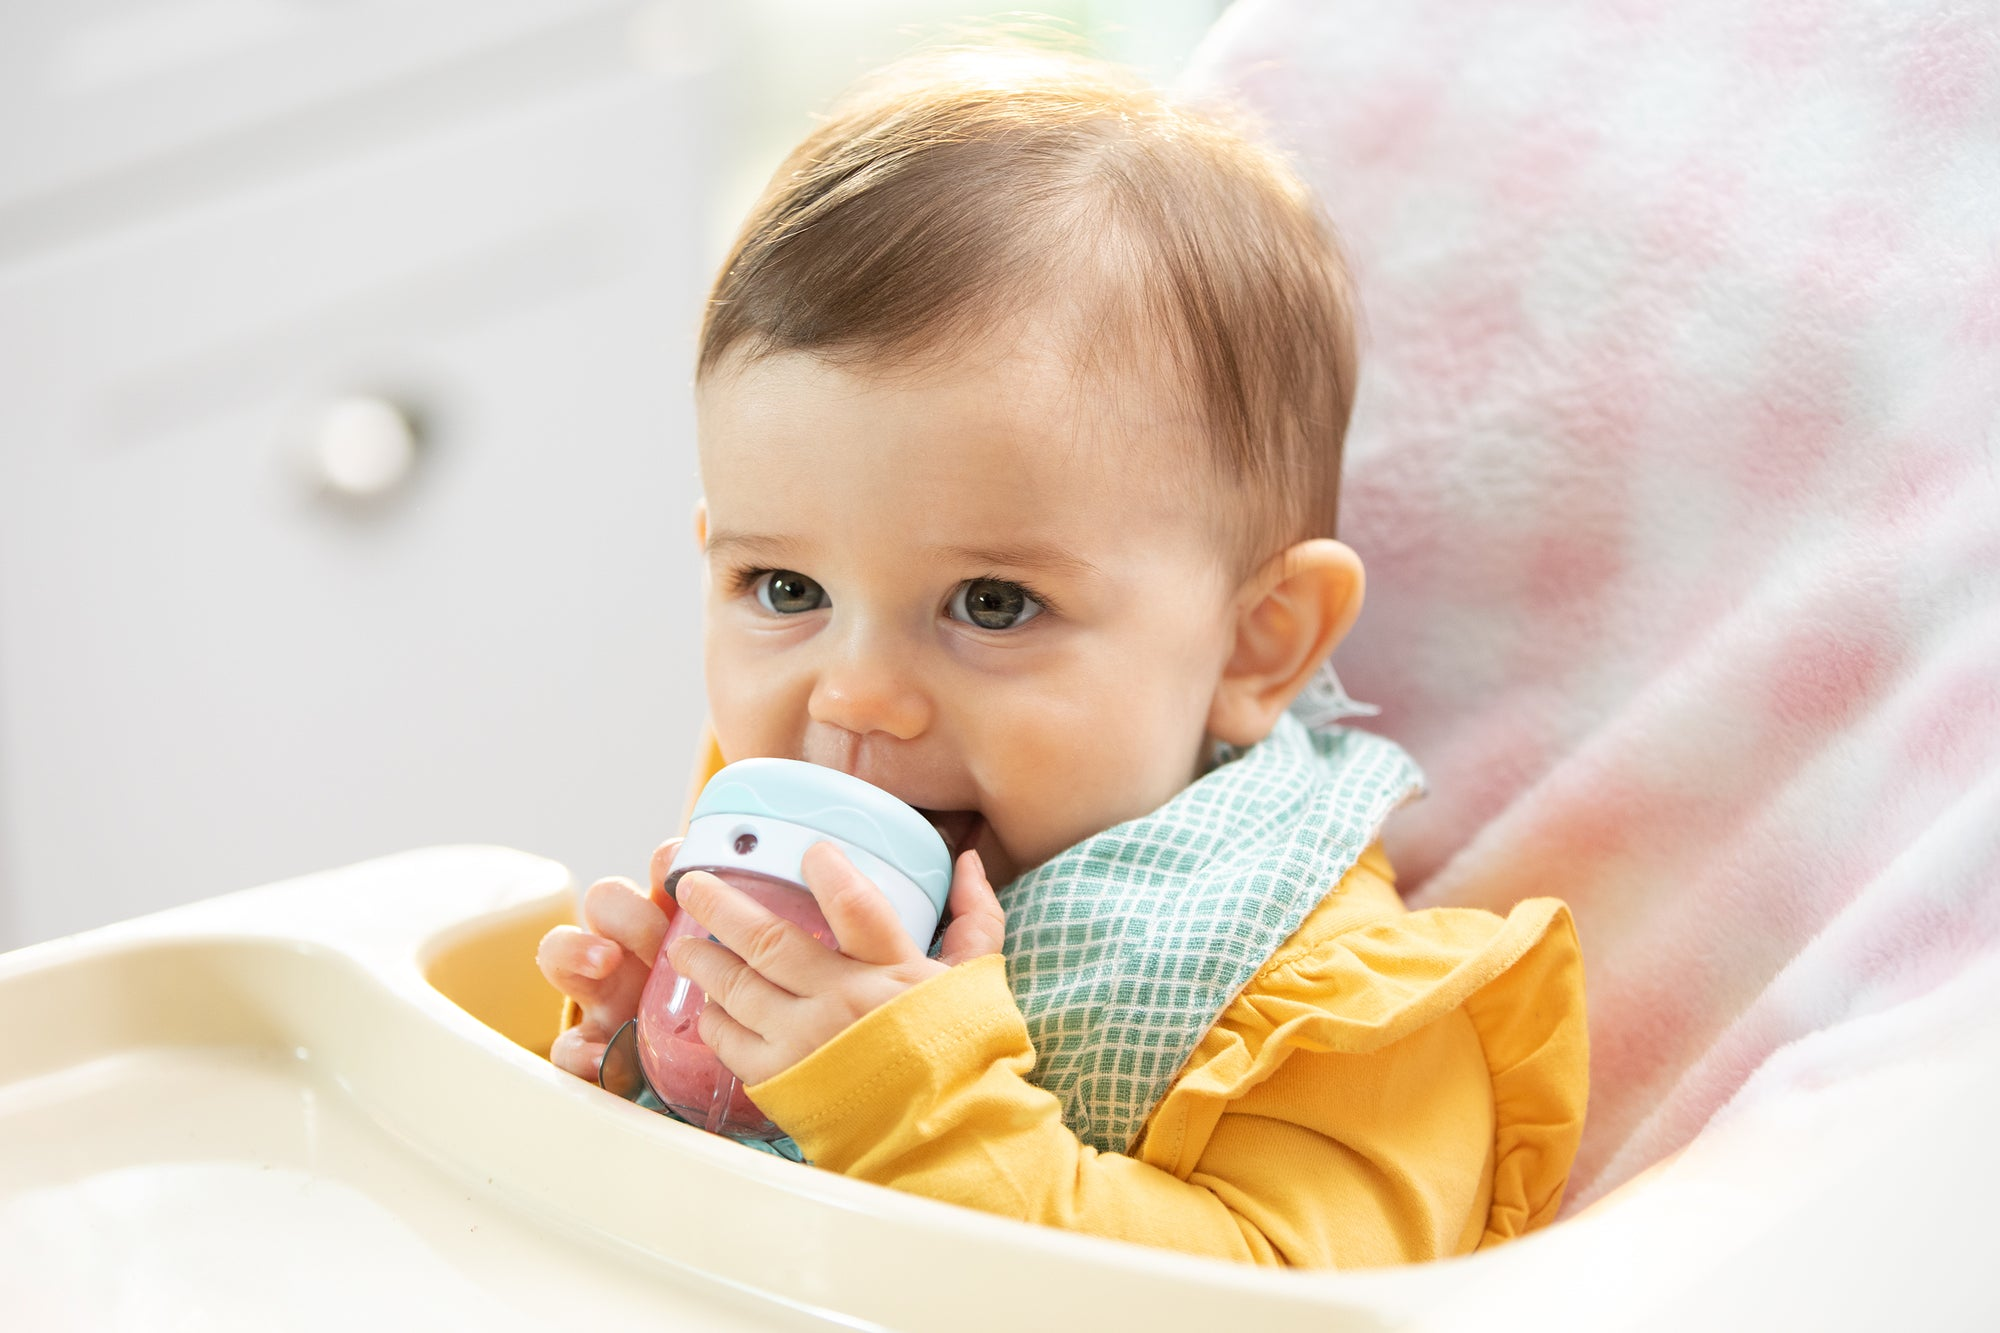 How to Know When Your Baby is Ready for Solids